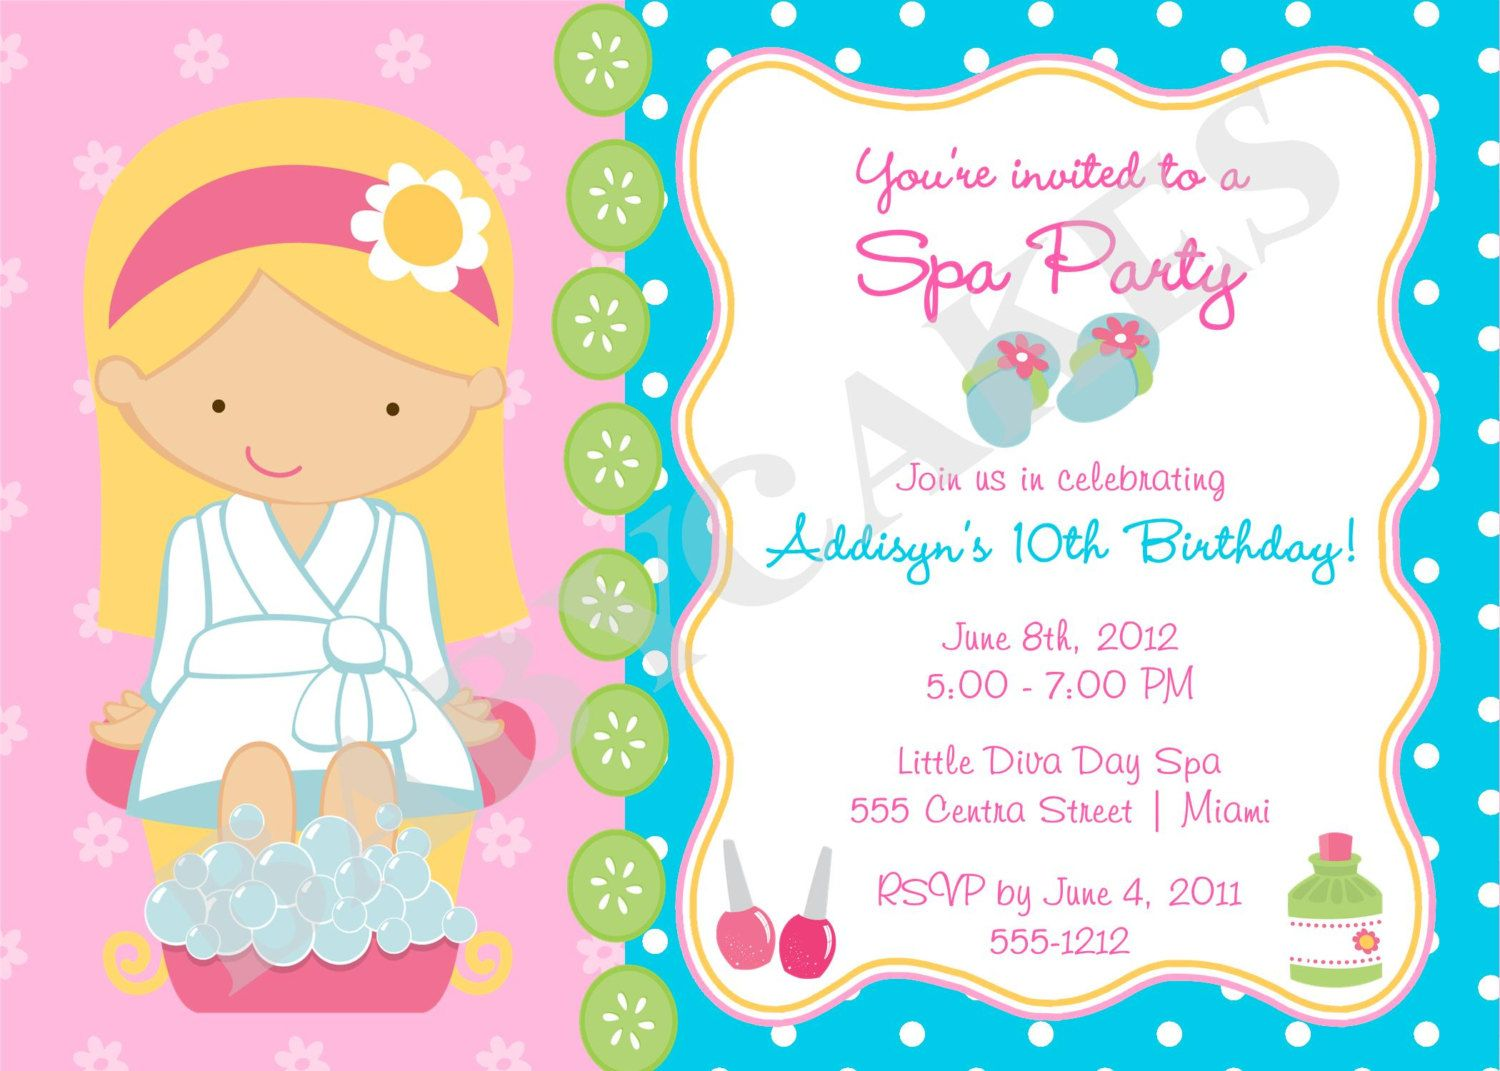 Spa party invitation spa invitation invite spa birthday party spa spa party invitation spa invitation invite spa birthday party spa birthday invitation invite choose your girl stopboris